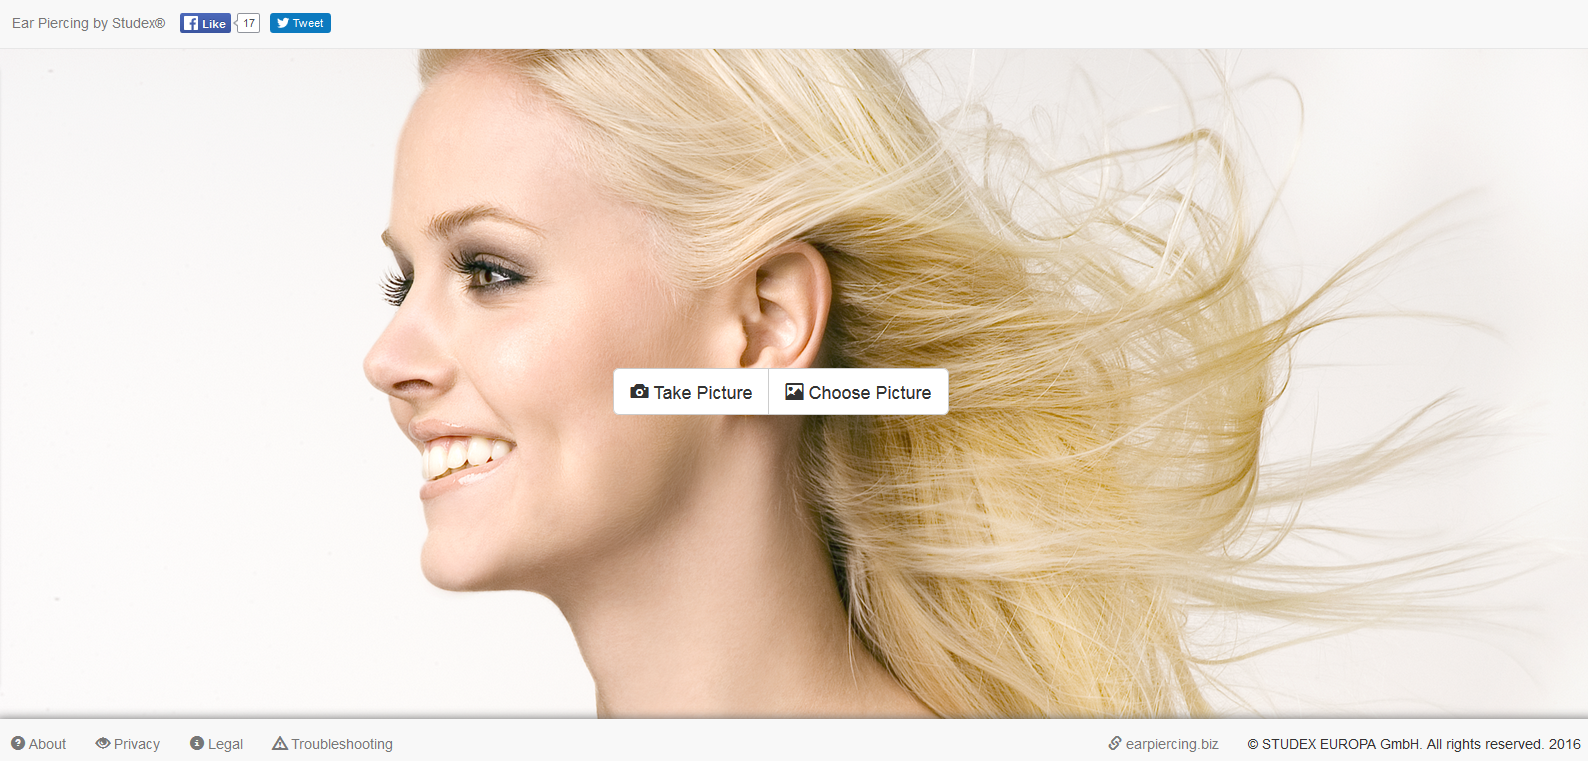 The STUDEX® Ear Piercing App: html version for PCs